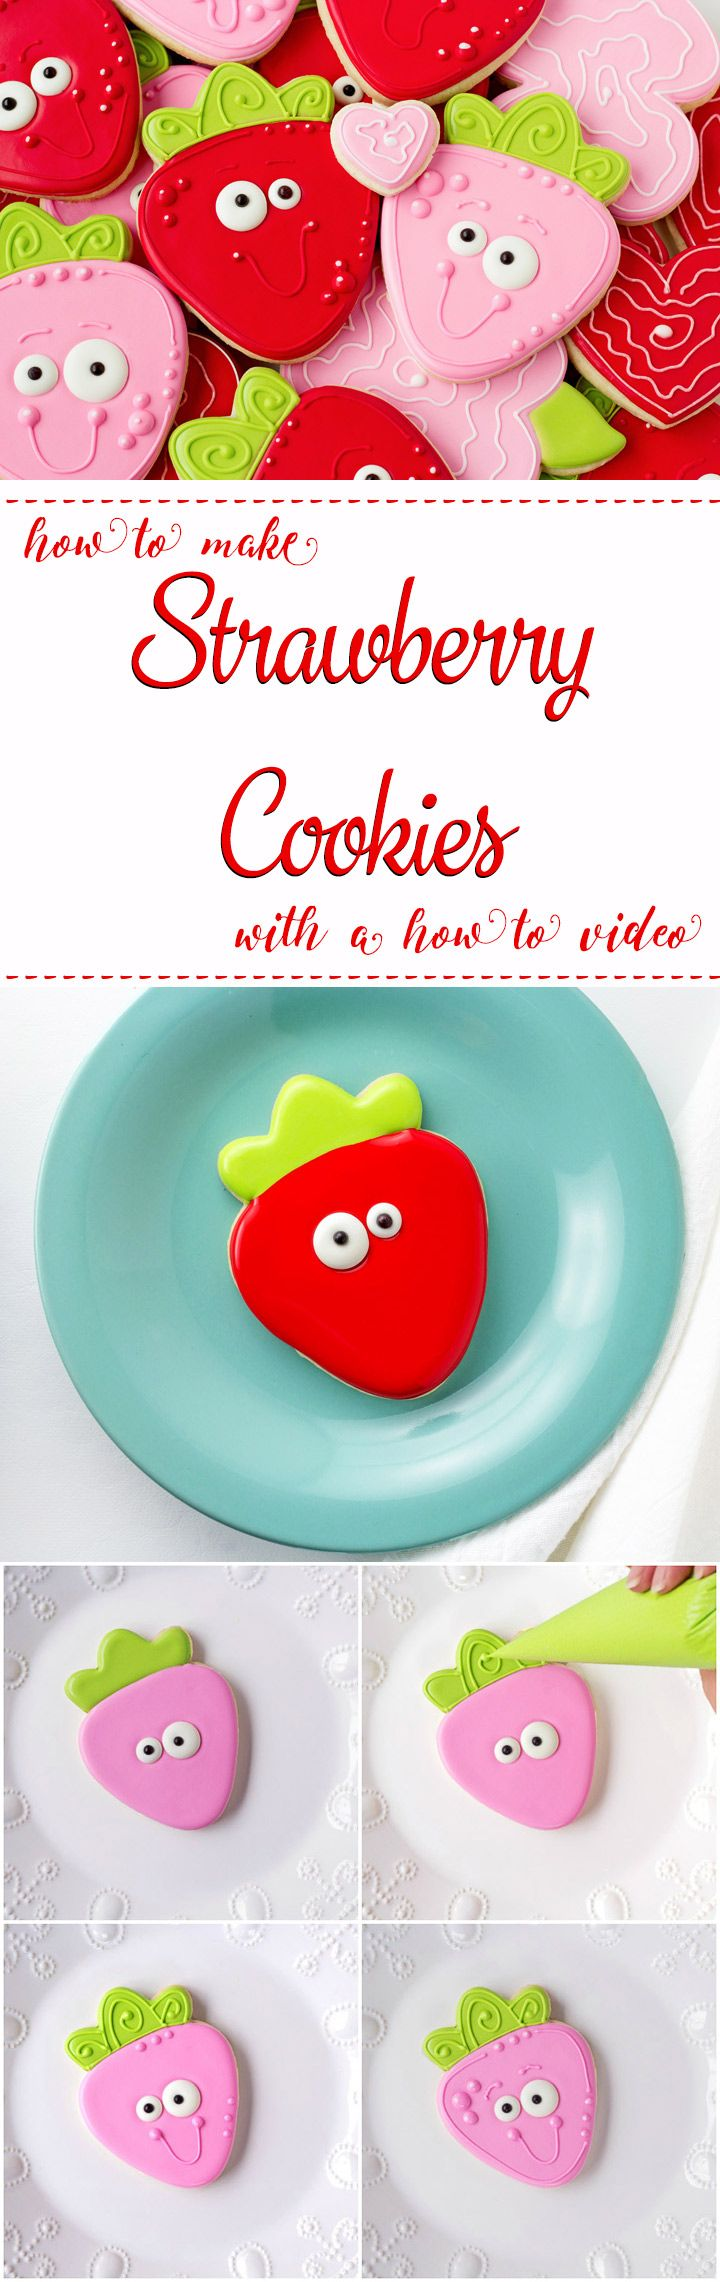 how to make a simple icing for cookies